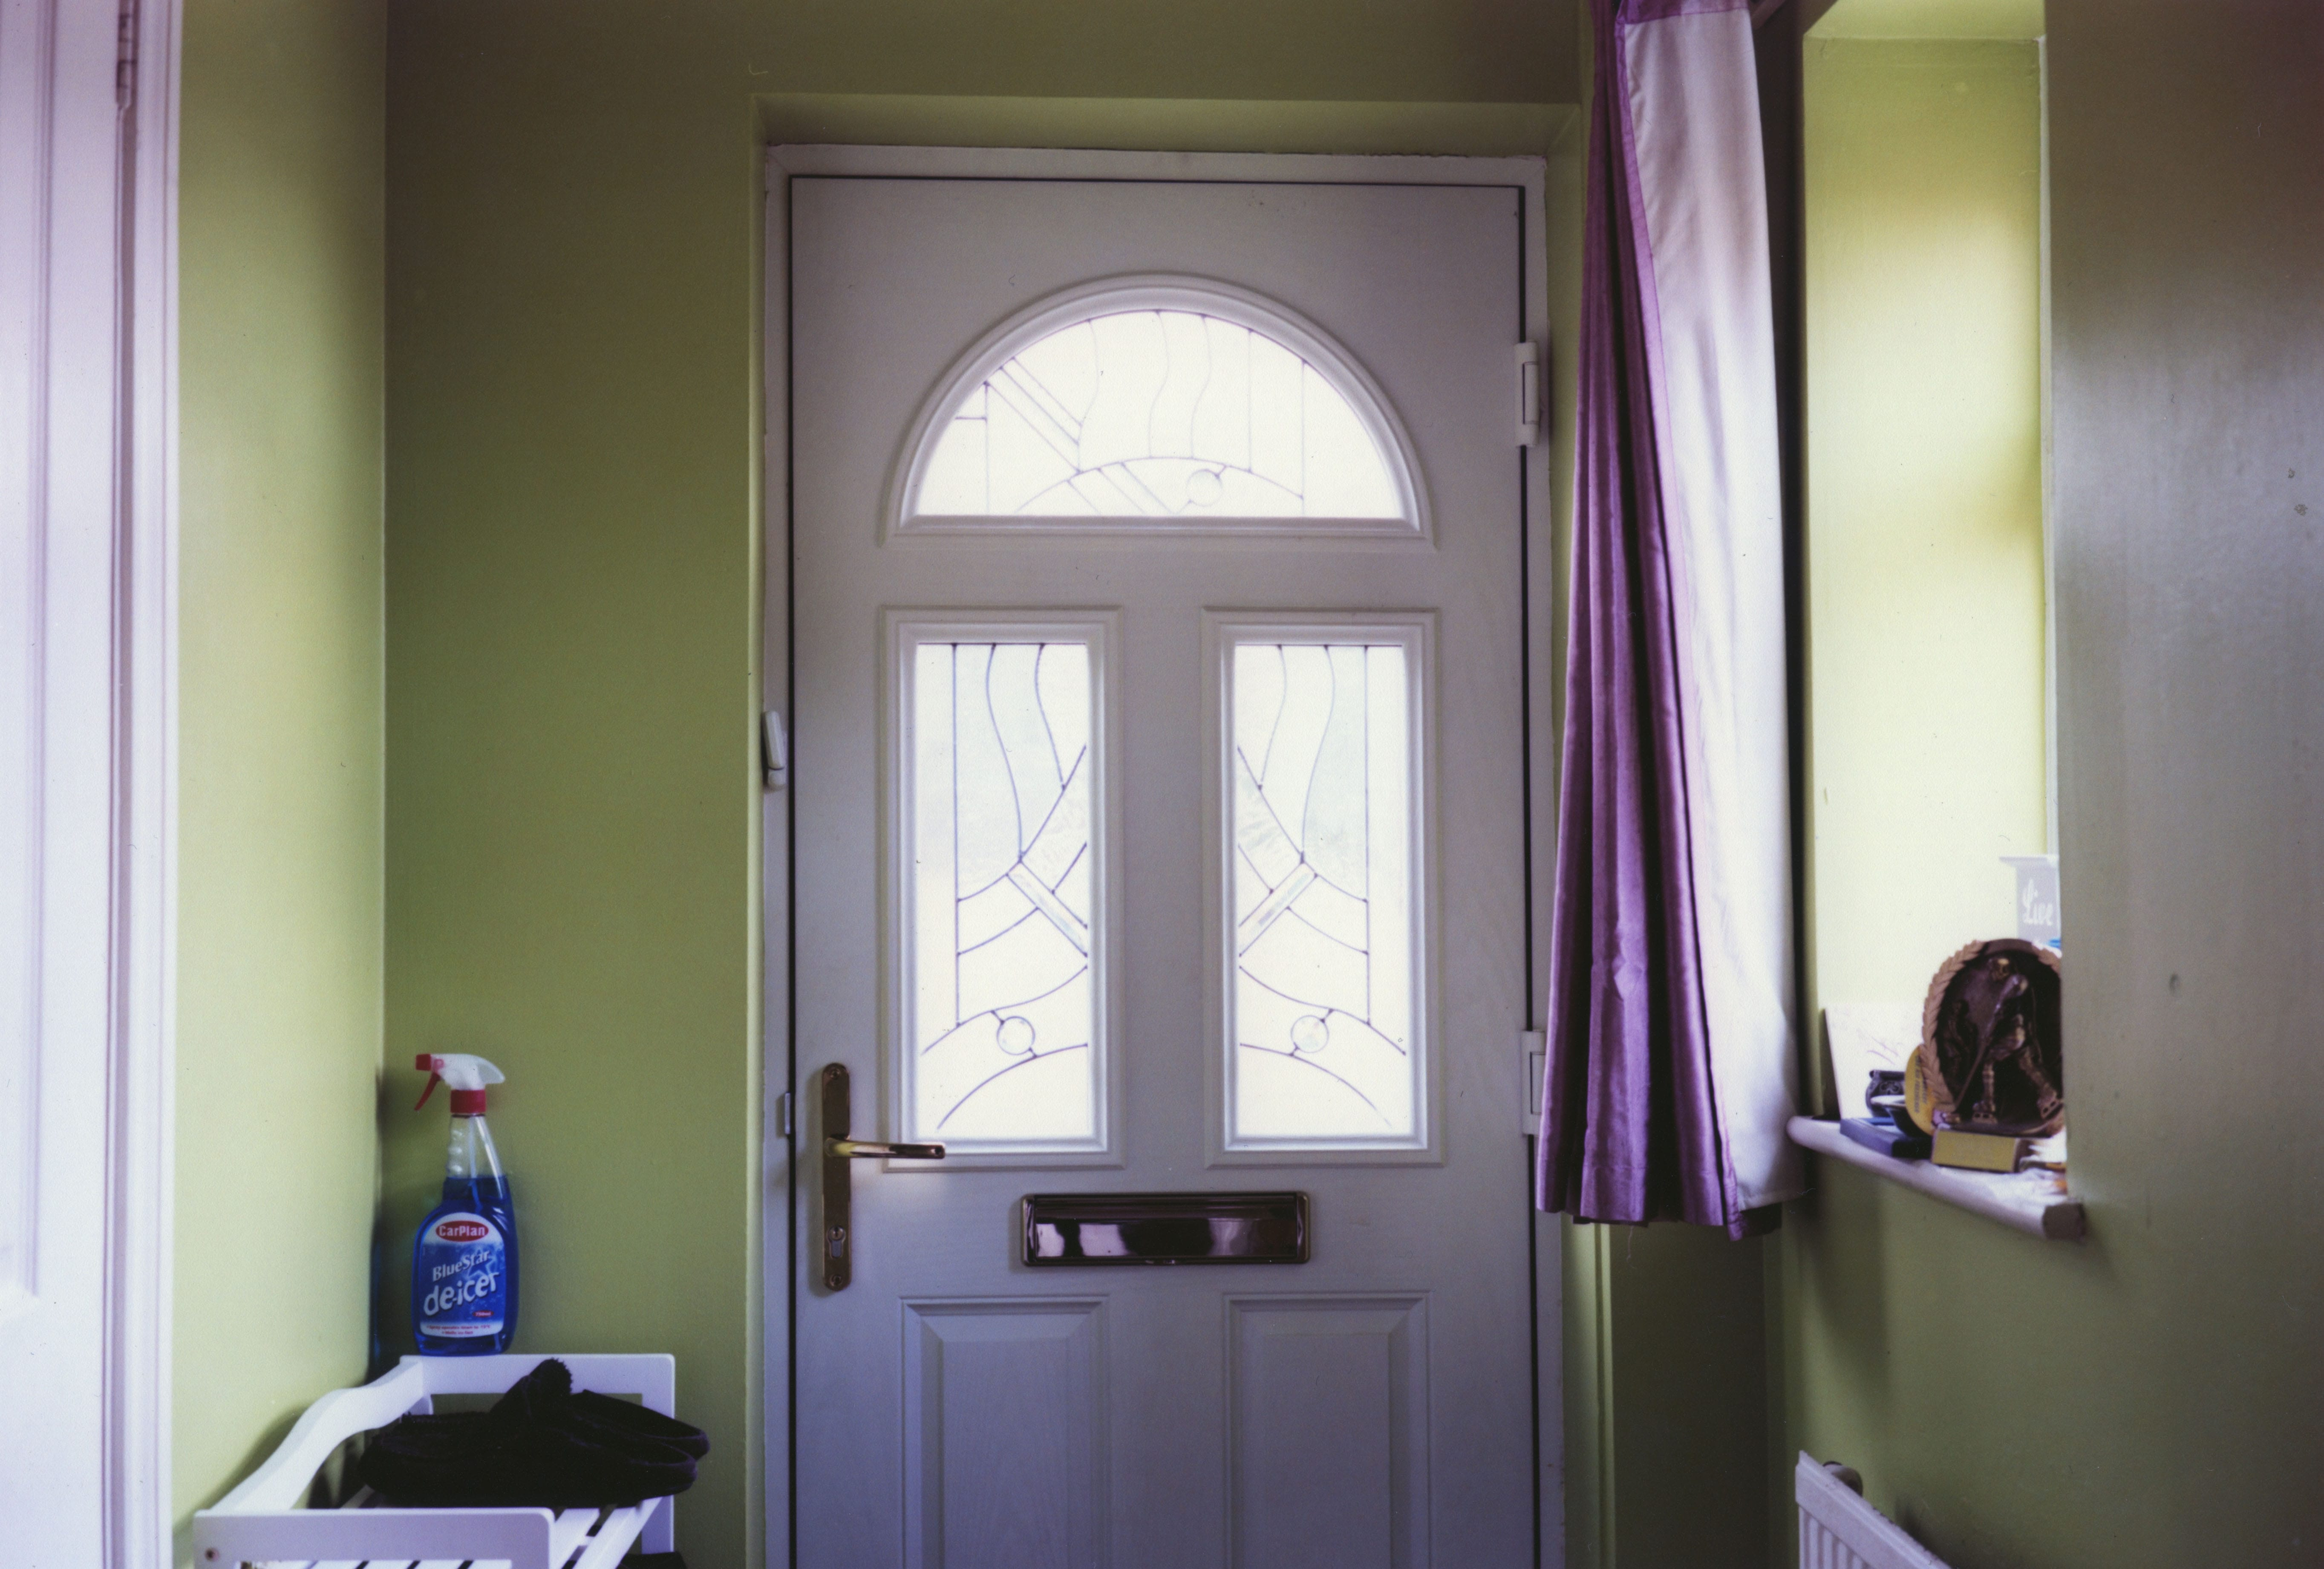 Photo of the interior of a front door